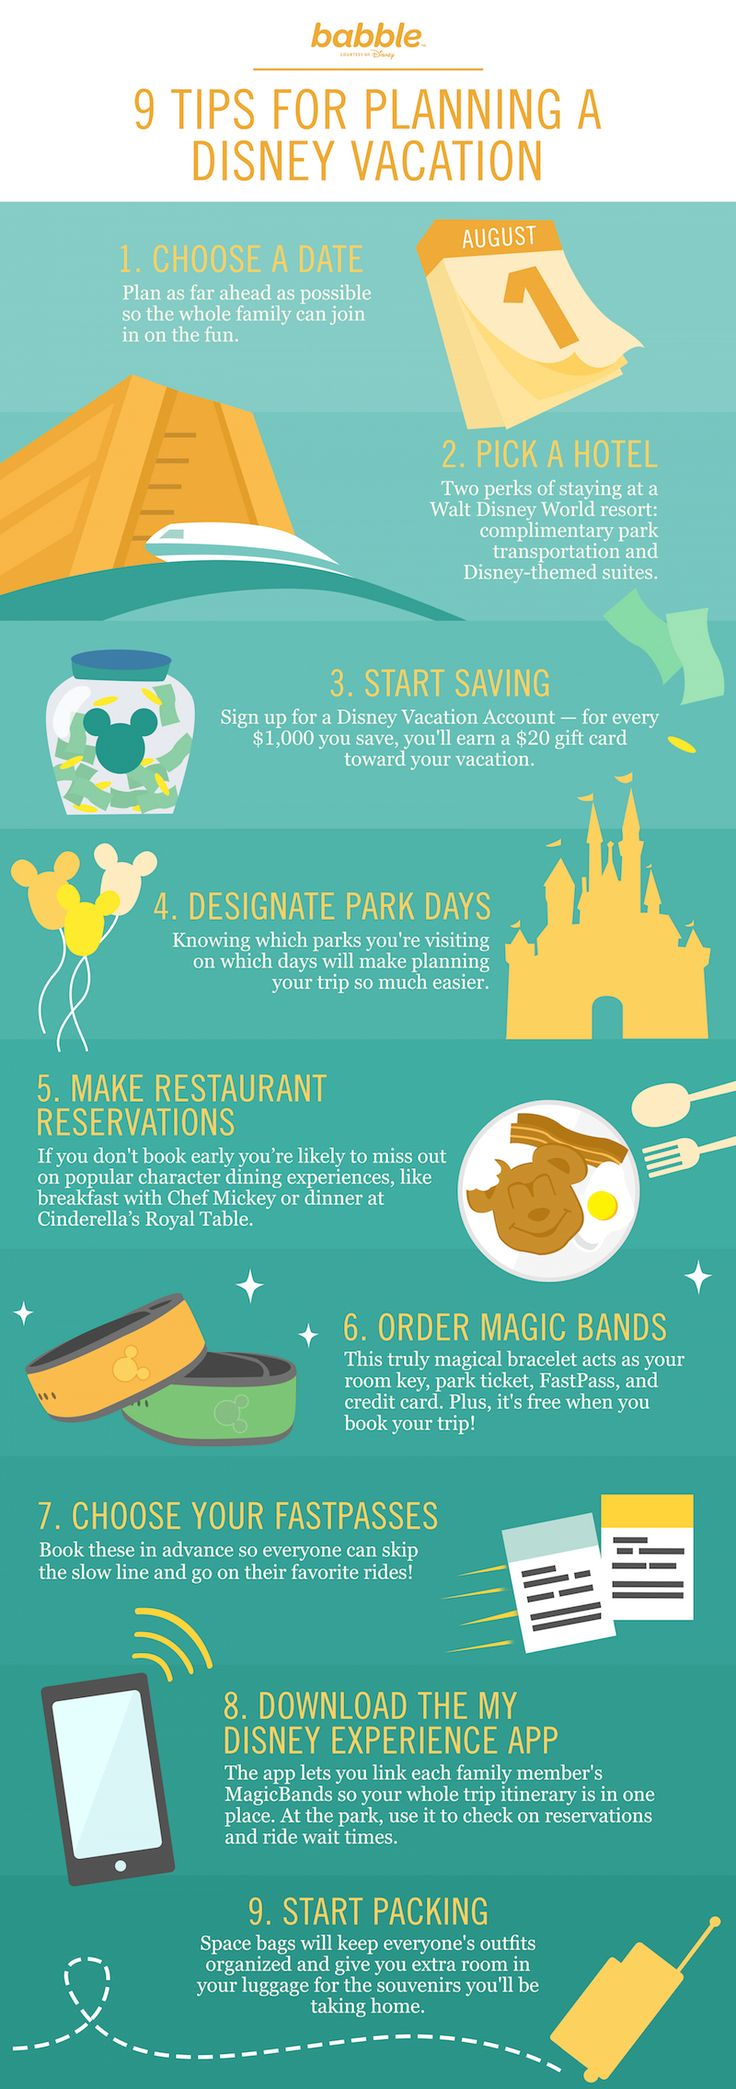 Planning a vacation to Walt Disney World is serious business! From pictures, to outfits, to assuring you get on the best rides, take some of our advice and use these 9 tips to plan the most magical WDW trip ever!